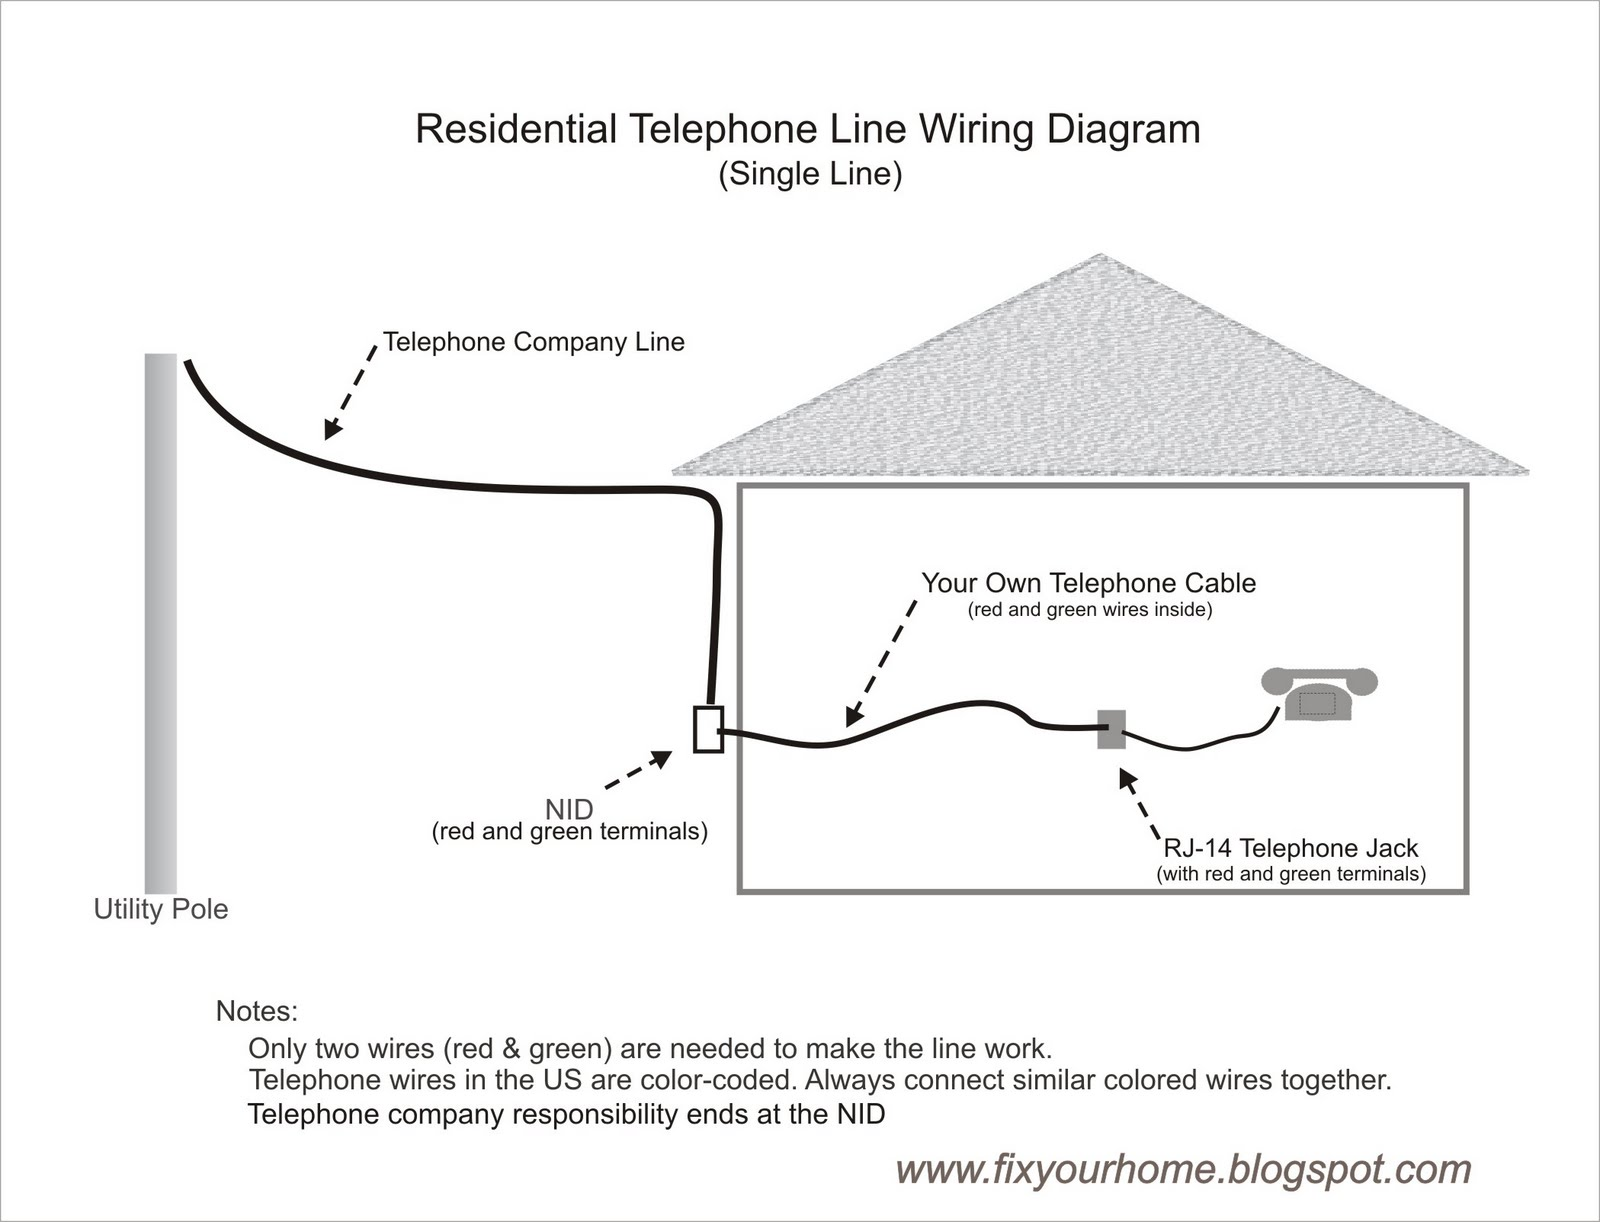 Fix your home how to wire own telephone line